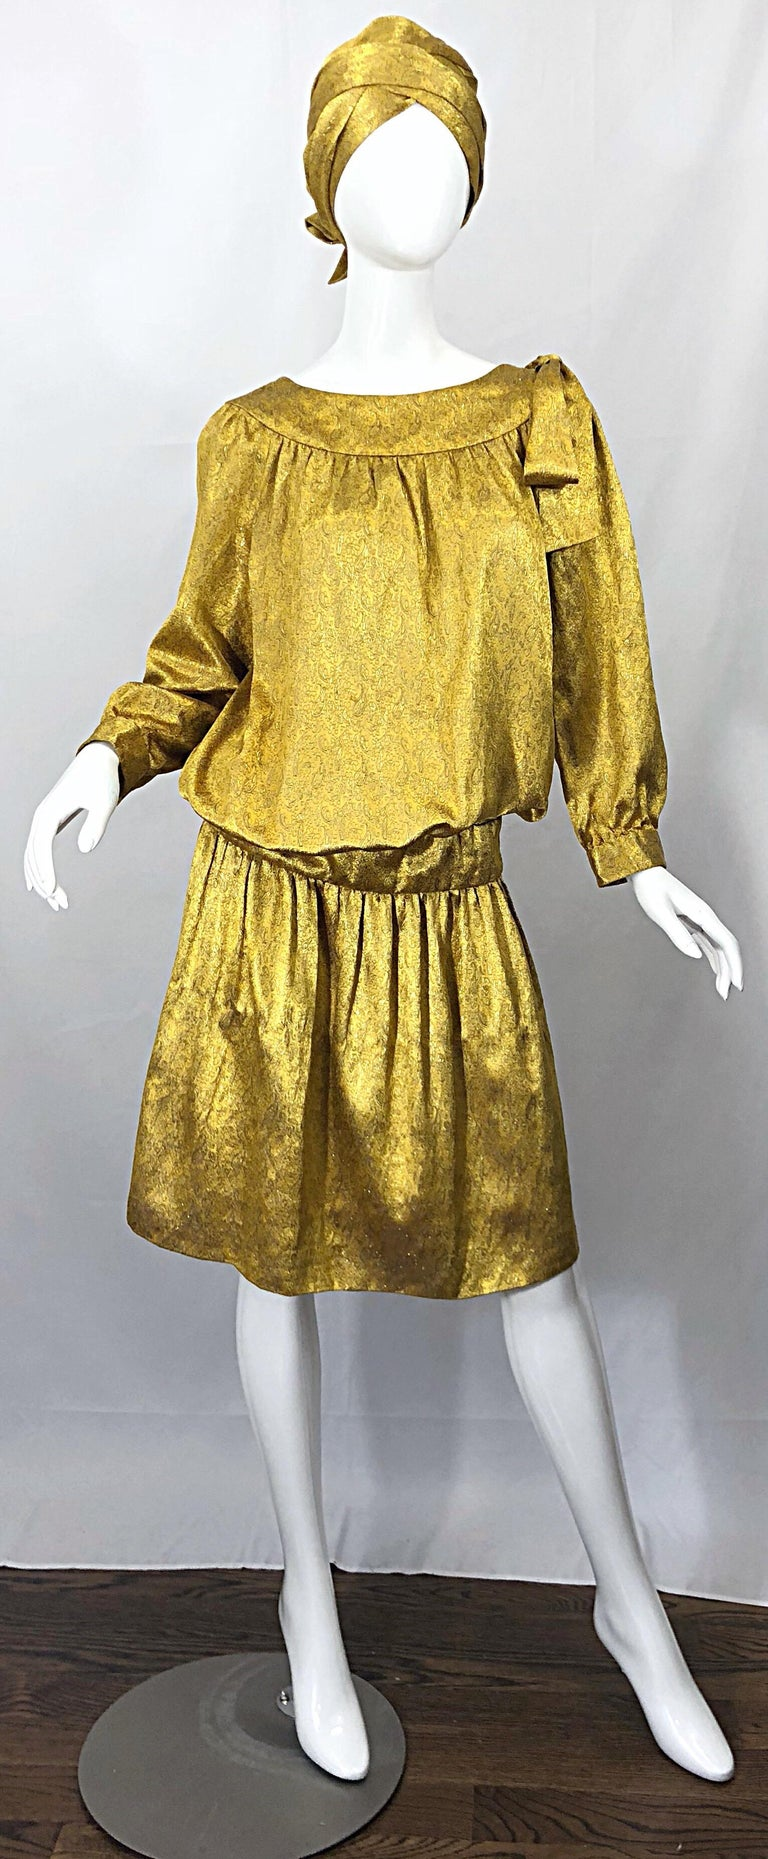 Vintage Brioni Yellow + Gold Silk 1920s Style Drop Waist Dress + Turban Sash In Excellent Condition For Sale In Chicago, IL